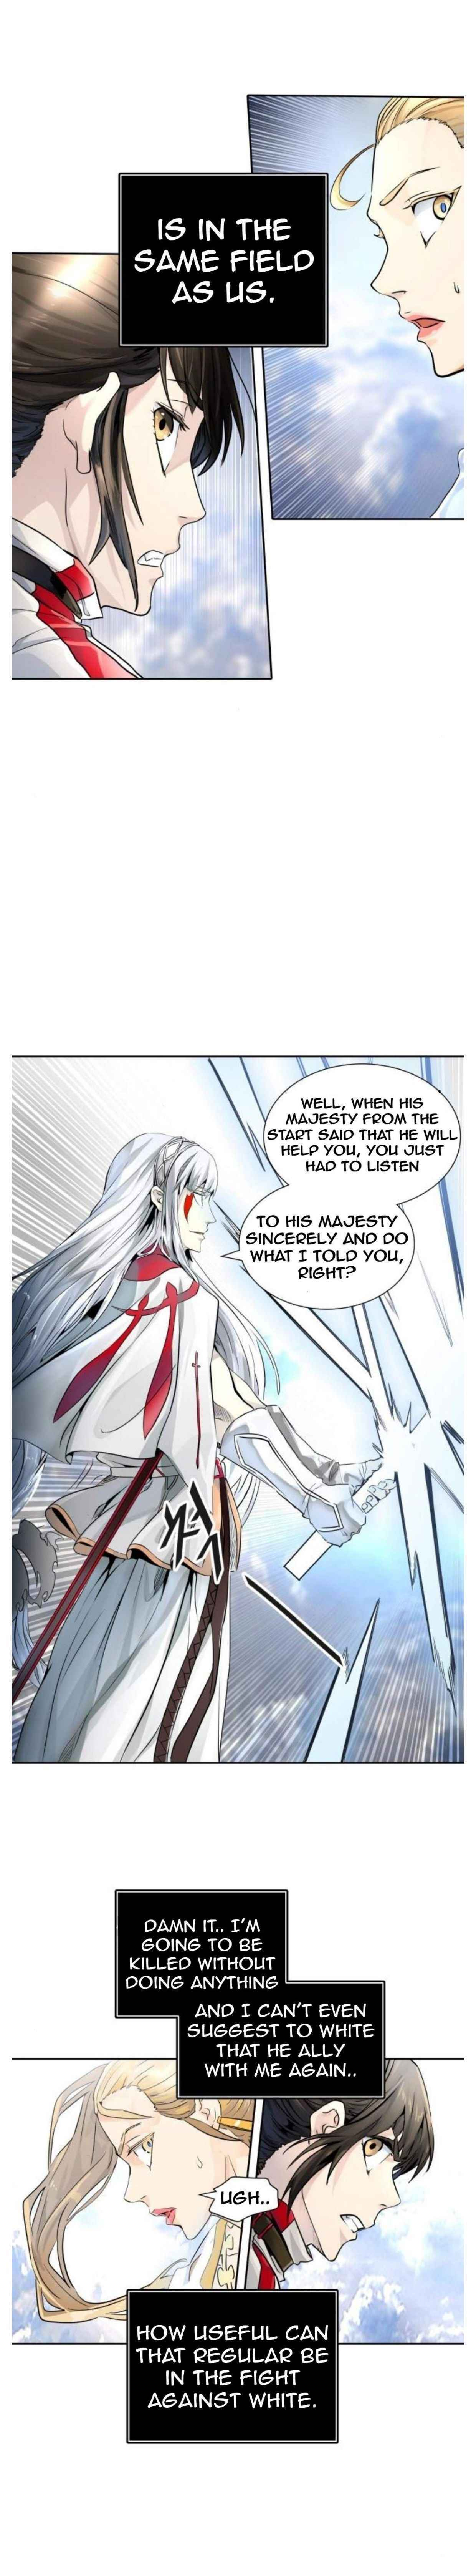 tower of god: Chapter 496 - Page 2